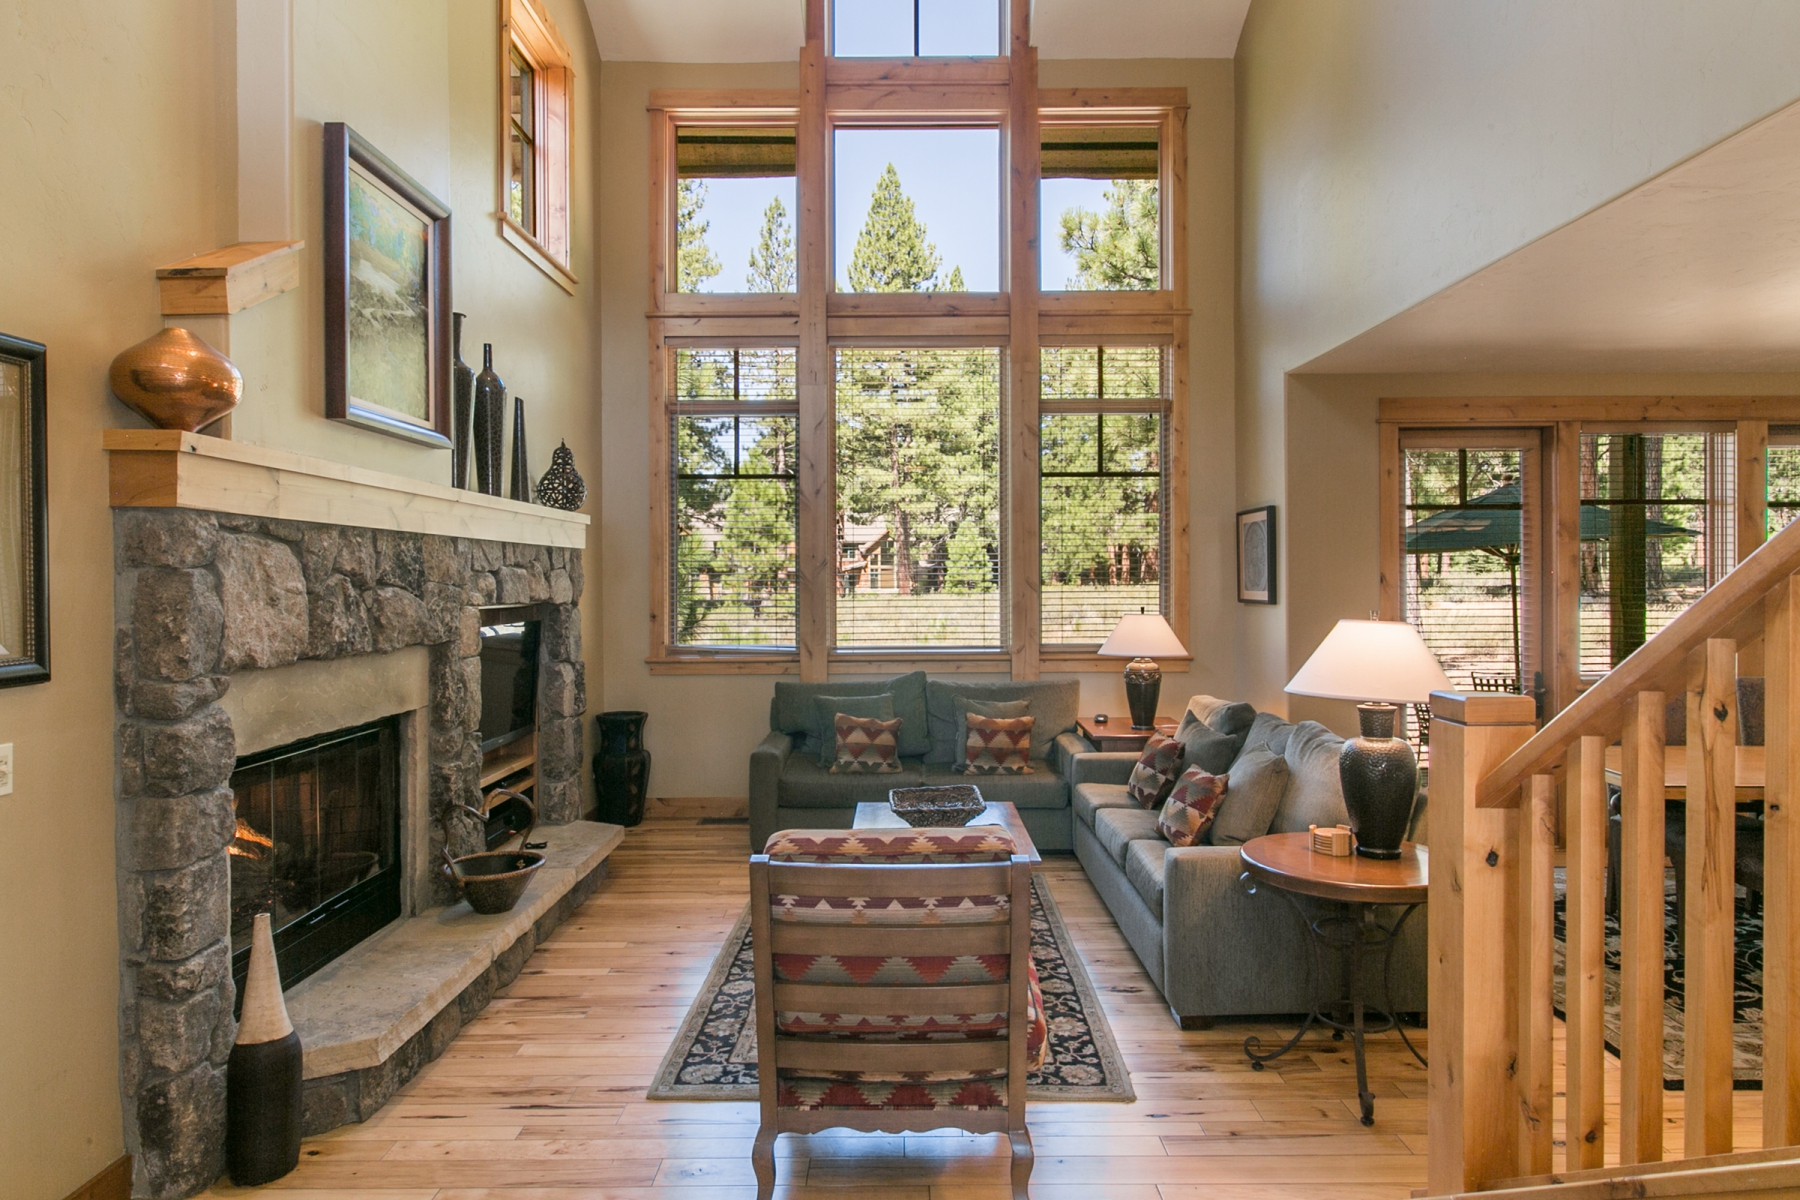 Additional photo for property listing at 12202 Lookout Loop F20-24 Truckee California, 96161 12202 Lookout Loop F20-24 Truckee, California 96161 United States